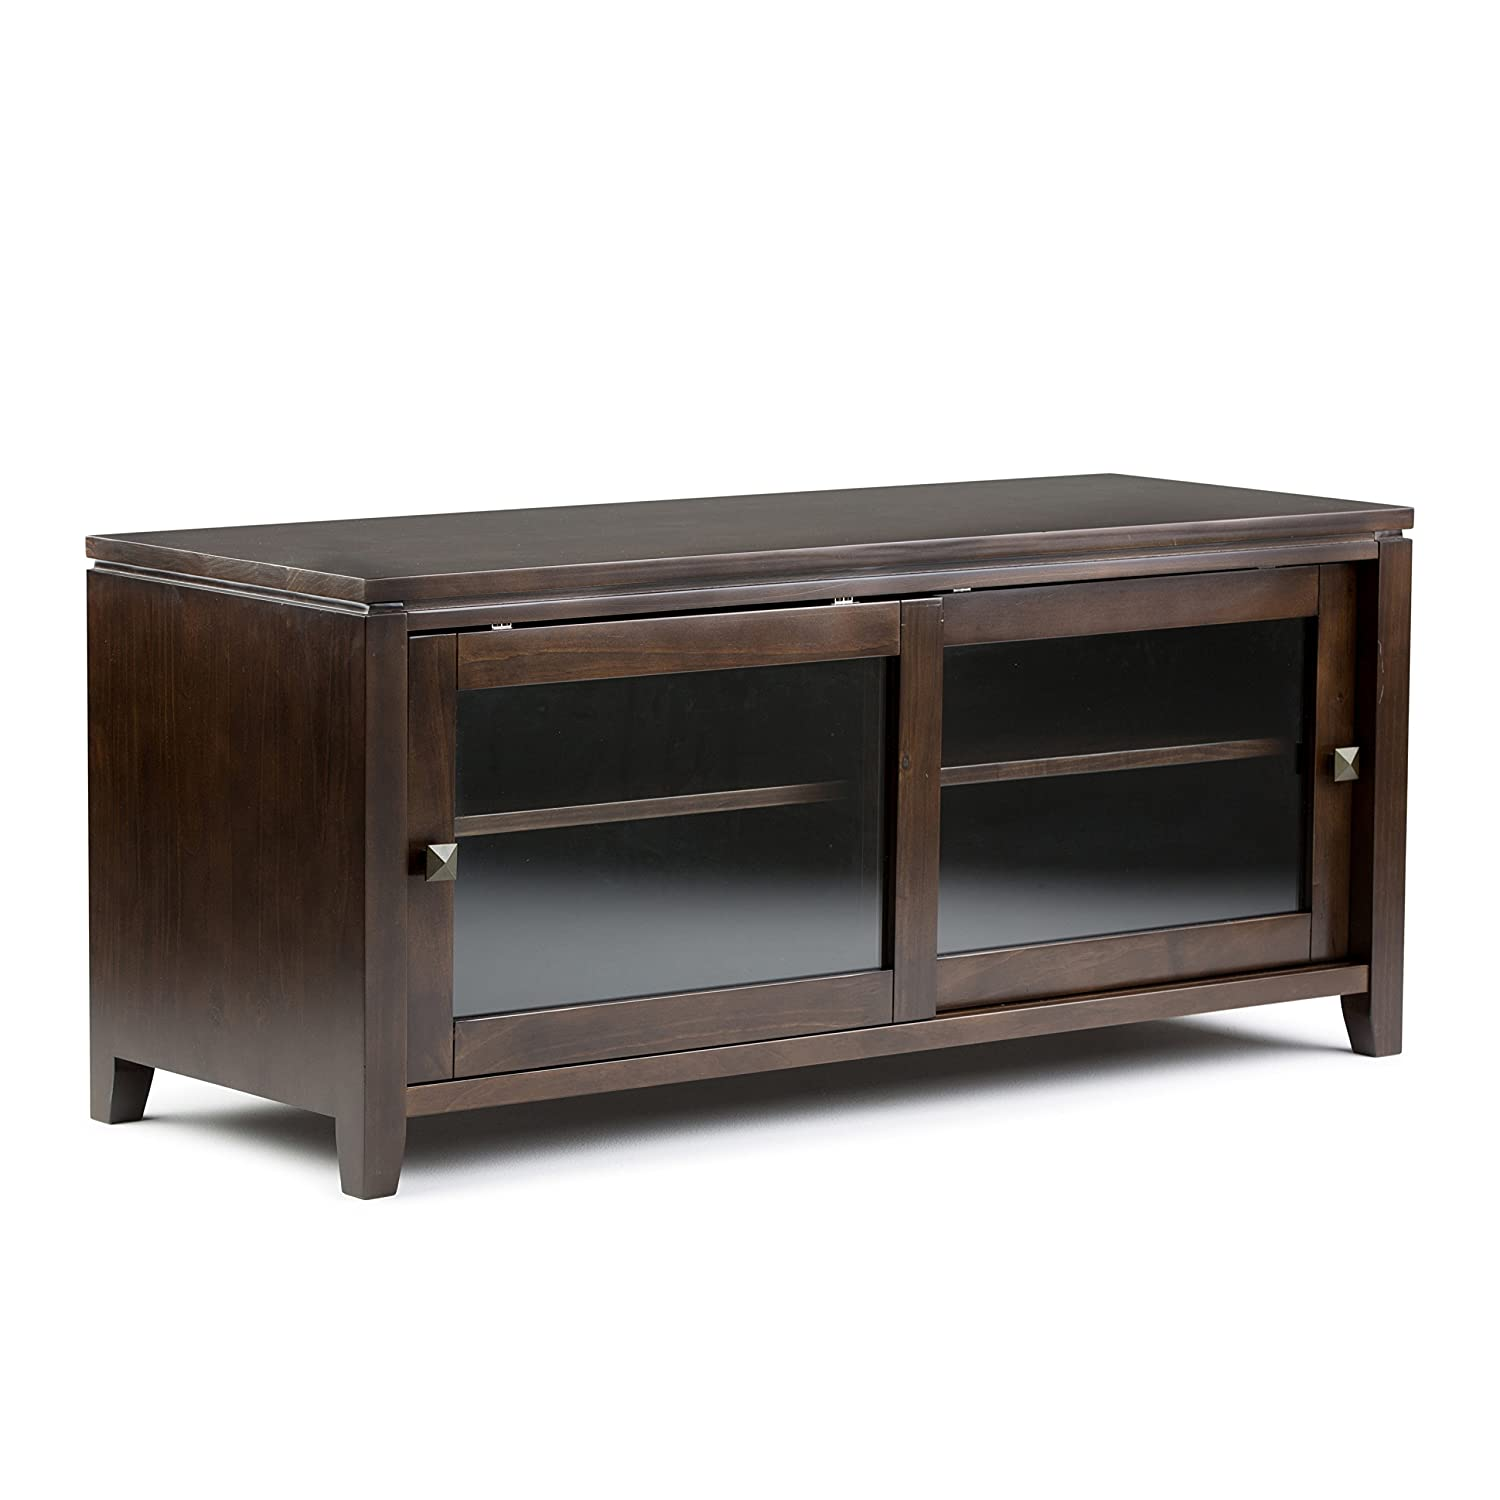 Simpli Home INT-AXCCOS-TV-CF Cosmopolitan Solid Wood 48 inch Wide Contemporary TV Media Stand in Coffee Brown For TVs up to 50 inches